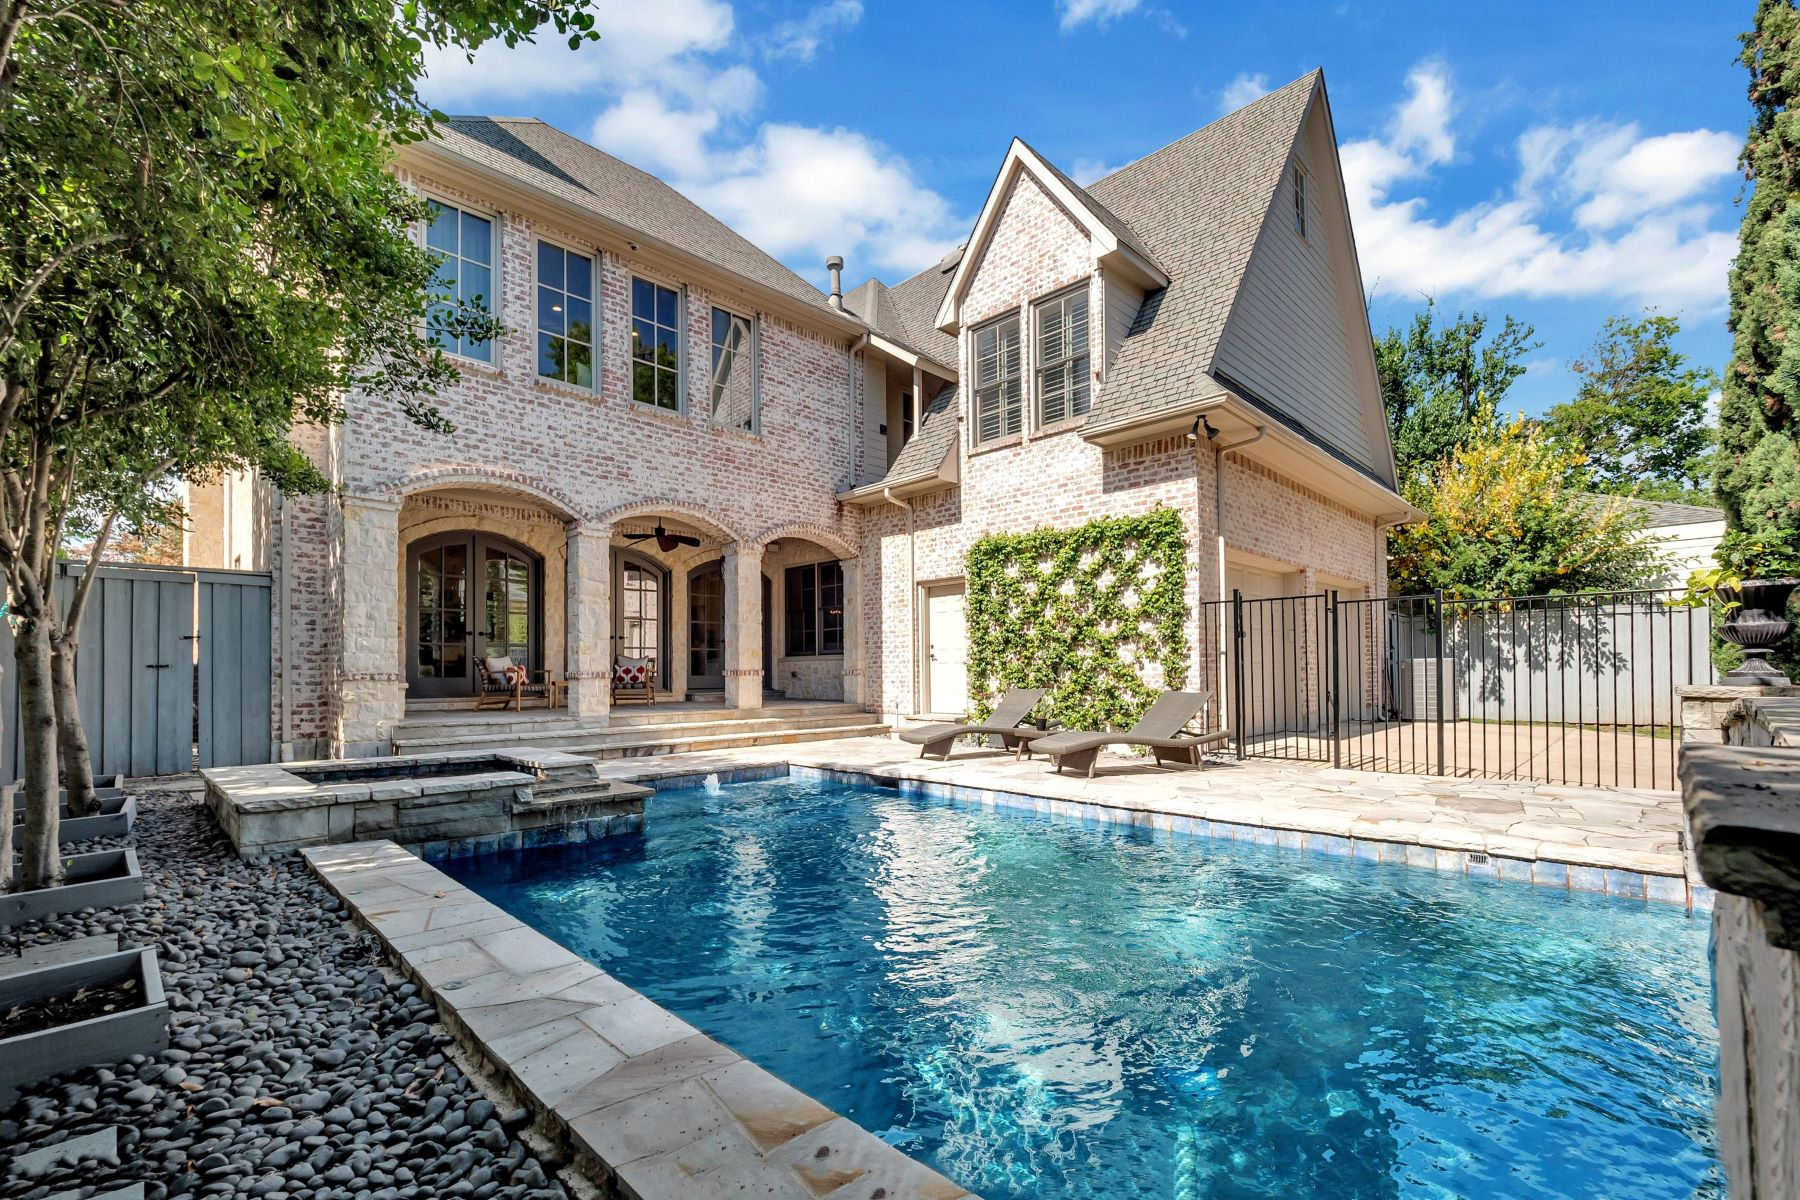 Single Family Homes for Sale at University Park Traditional with Sophisticated French Flair 3421 Wentwood Drive University Park, Texas 75225 United States